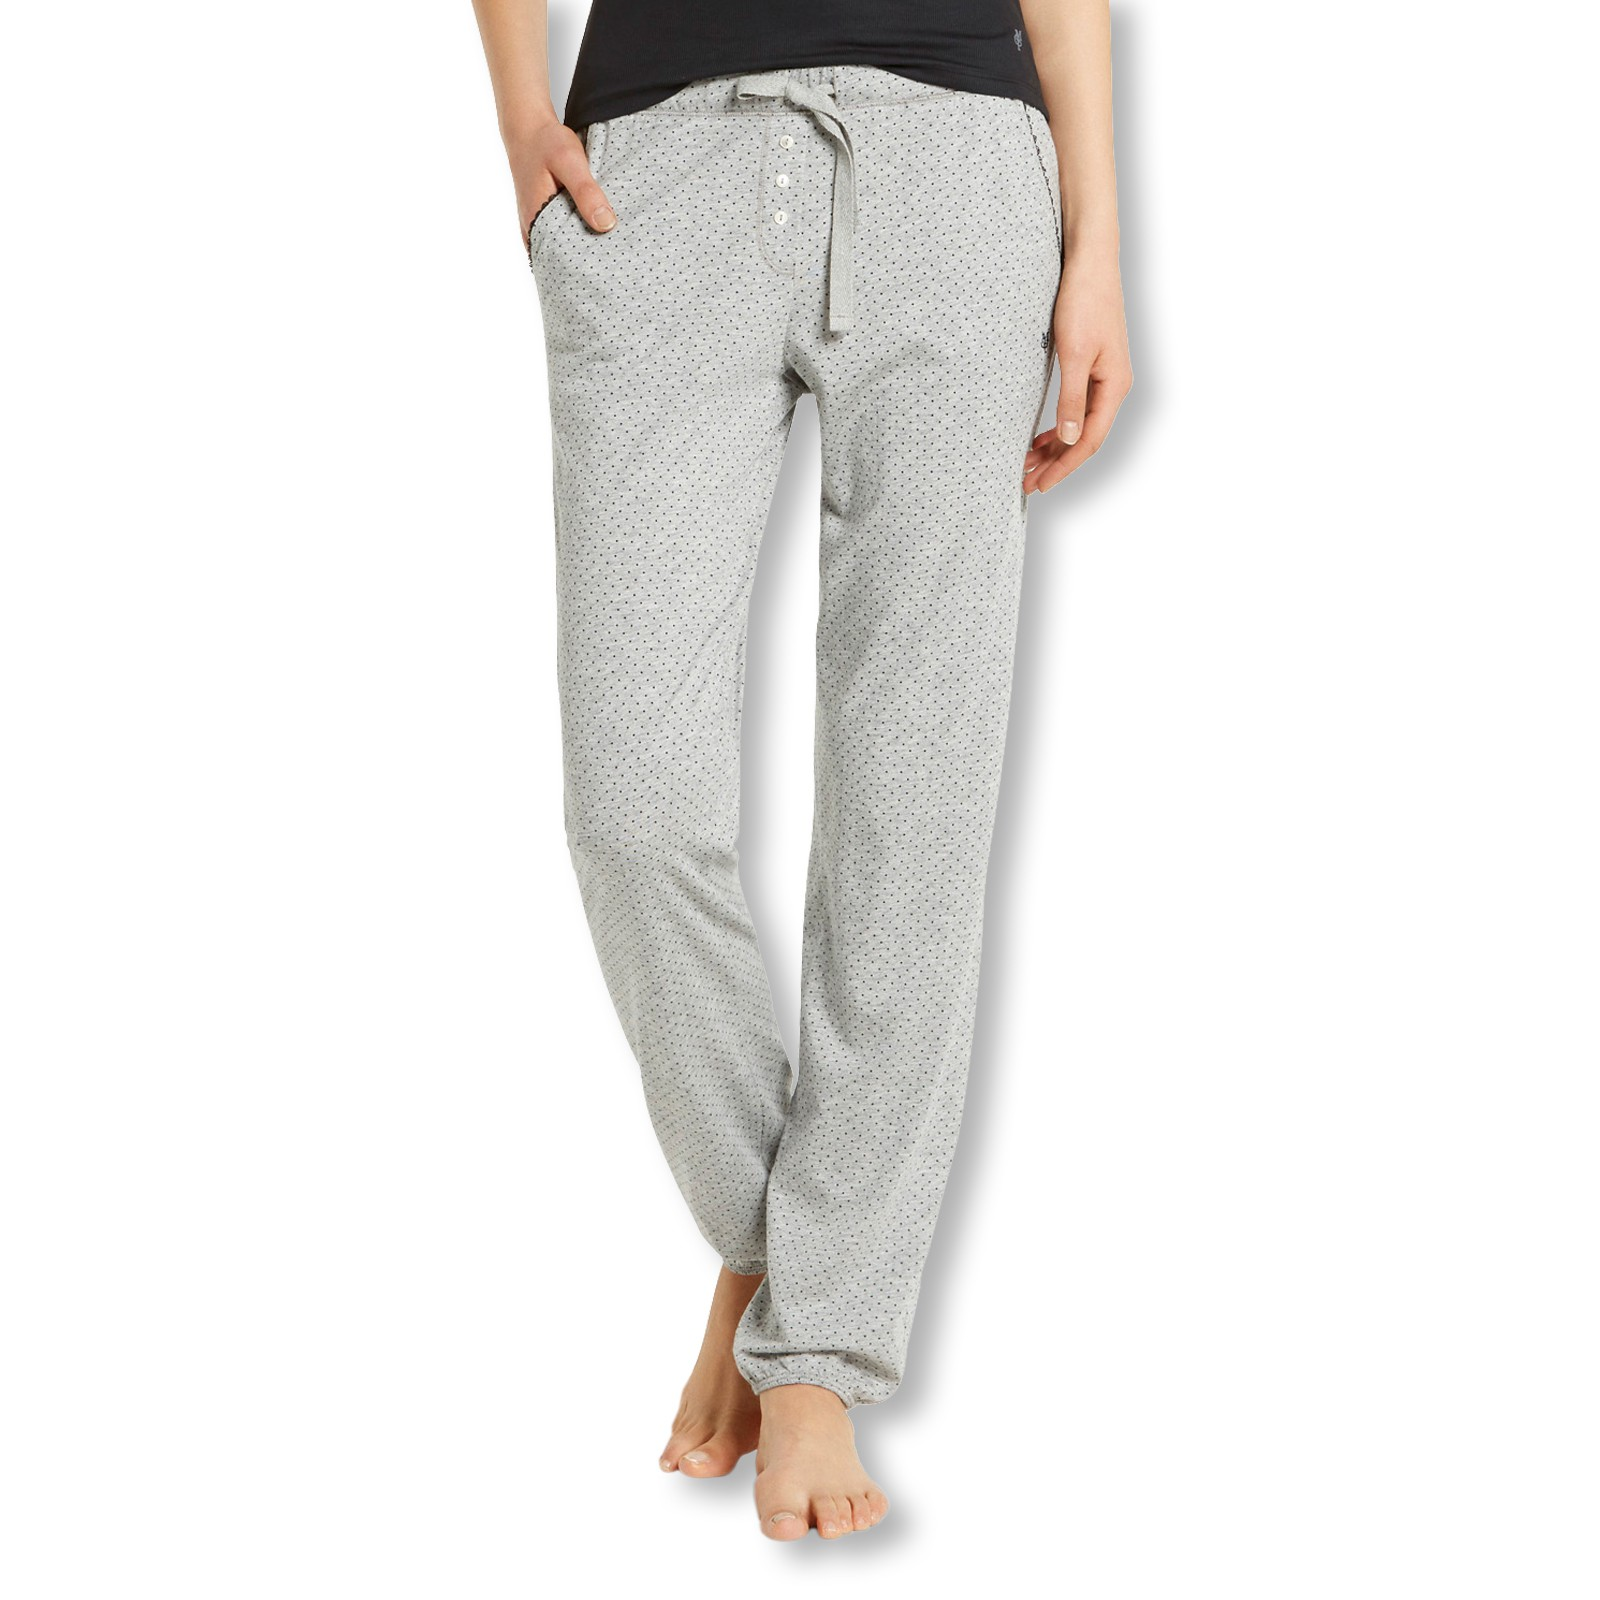 Marc O'Polo Damen Pyjamahose Schlafanzughose Pants lang 154554 S M L XL in grey melange